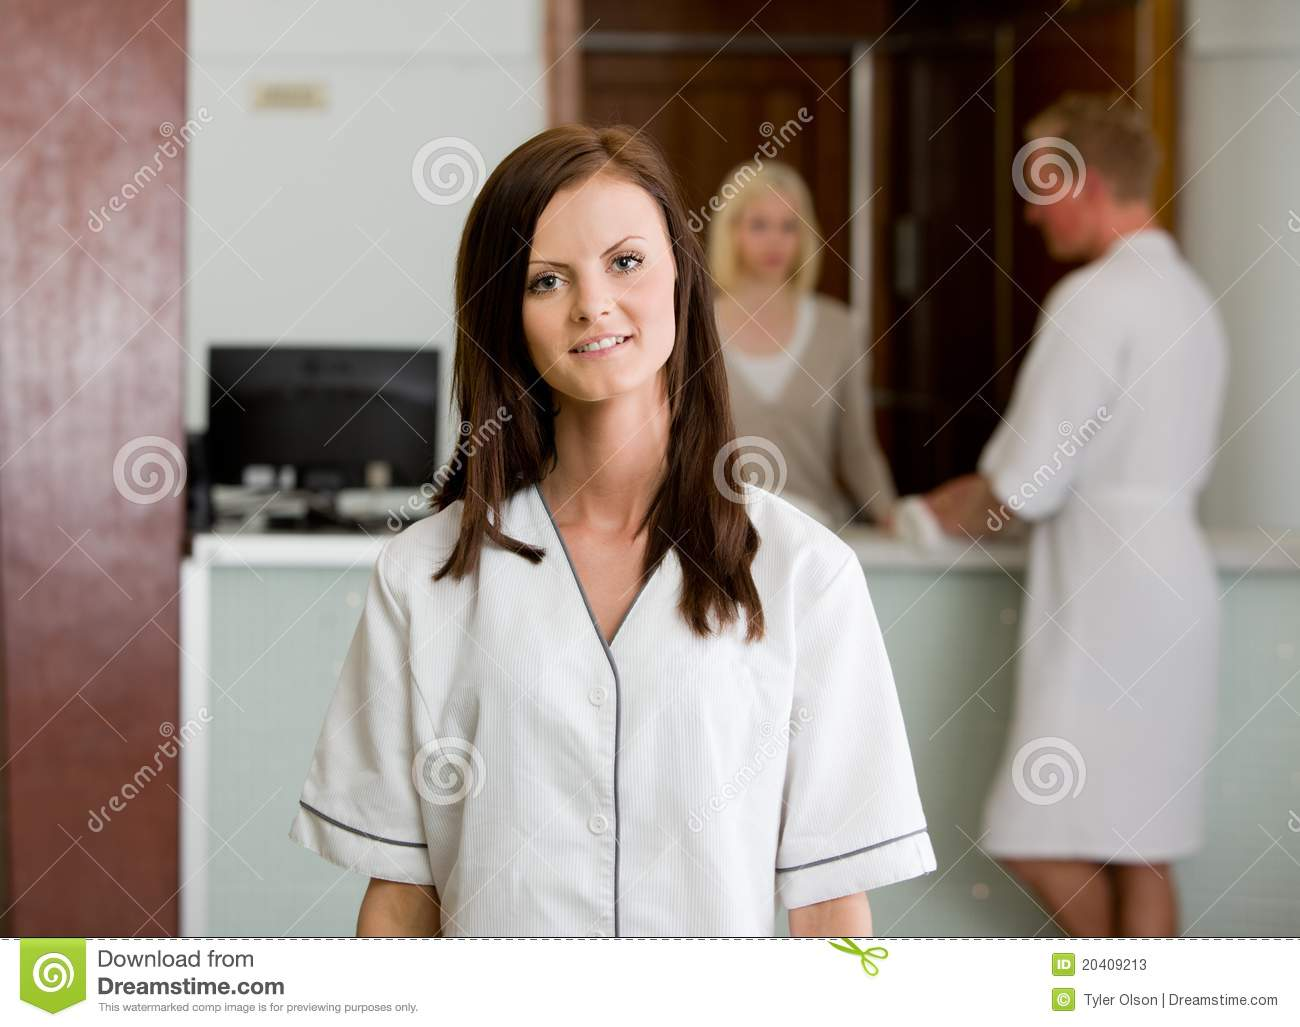 Spa therapist in uniform stock image image of attractive for Spa uniform europe